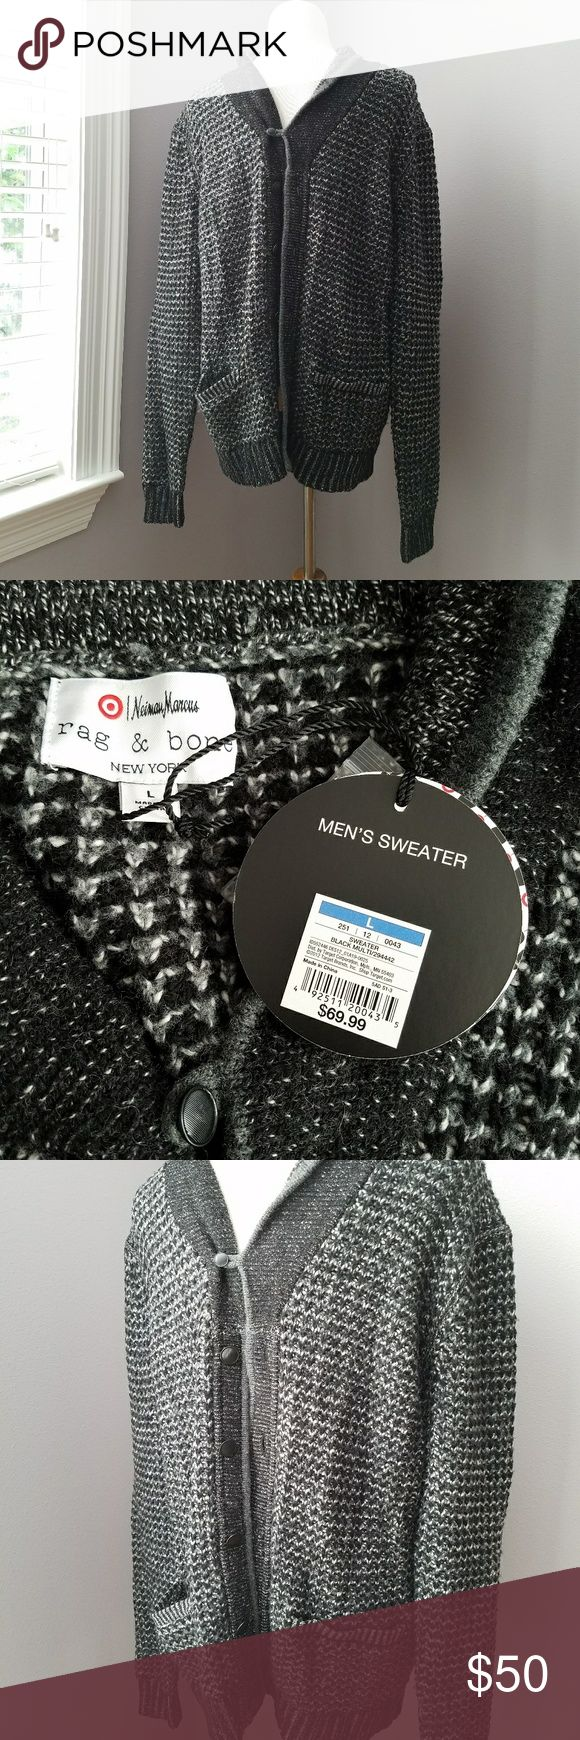 Rag & bone NM + Target Mens Shawl Collar Sweater New with tags! Cotton wool blend Button down front cardigan   BUNDLE your likes and shoot me and OFFER for best deals rag & bone Sweaters Cardigan